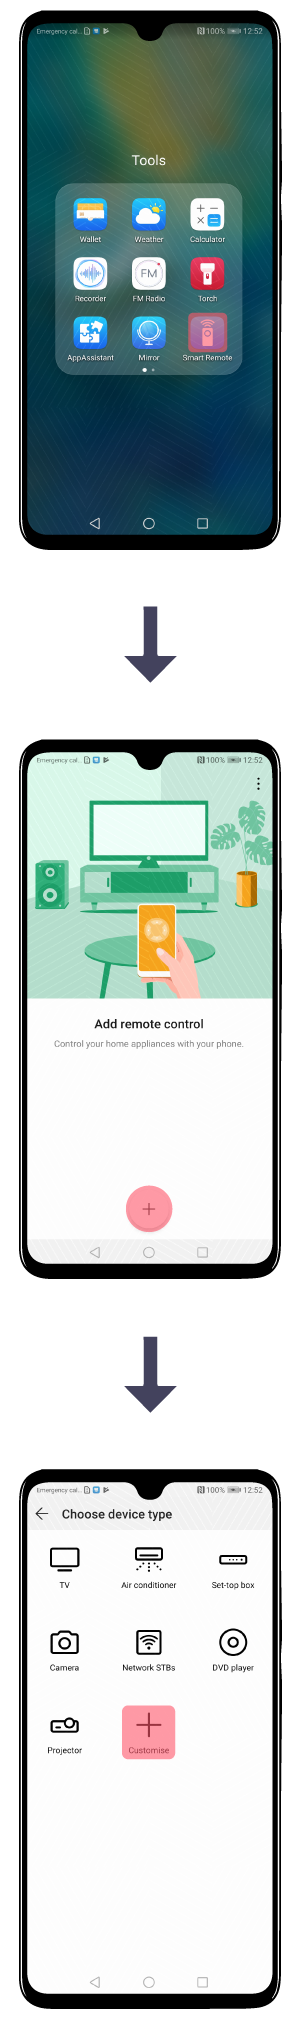 Control your home appliances with the Mate 20 series IR sensor